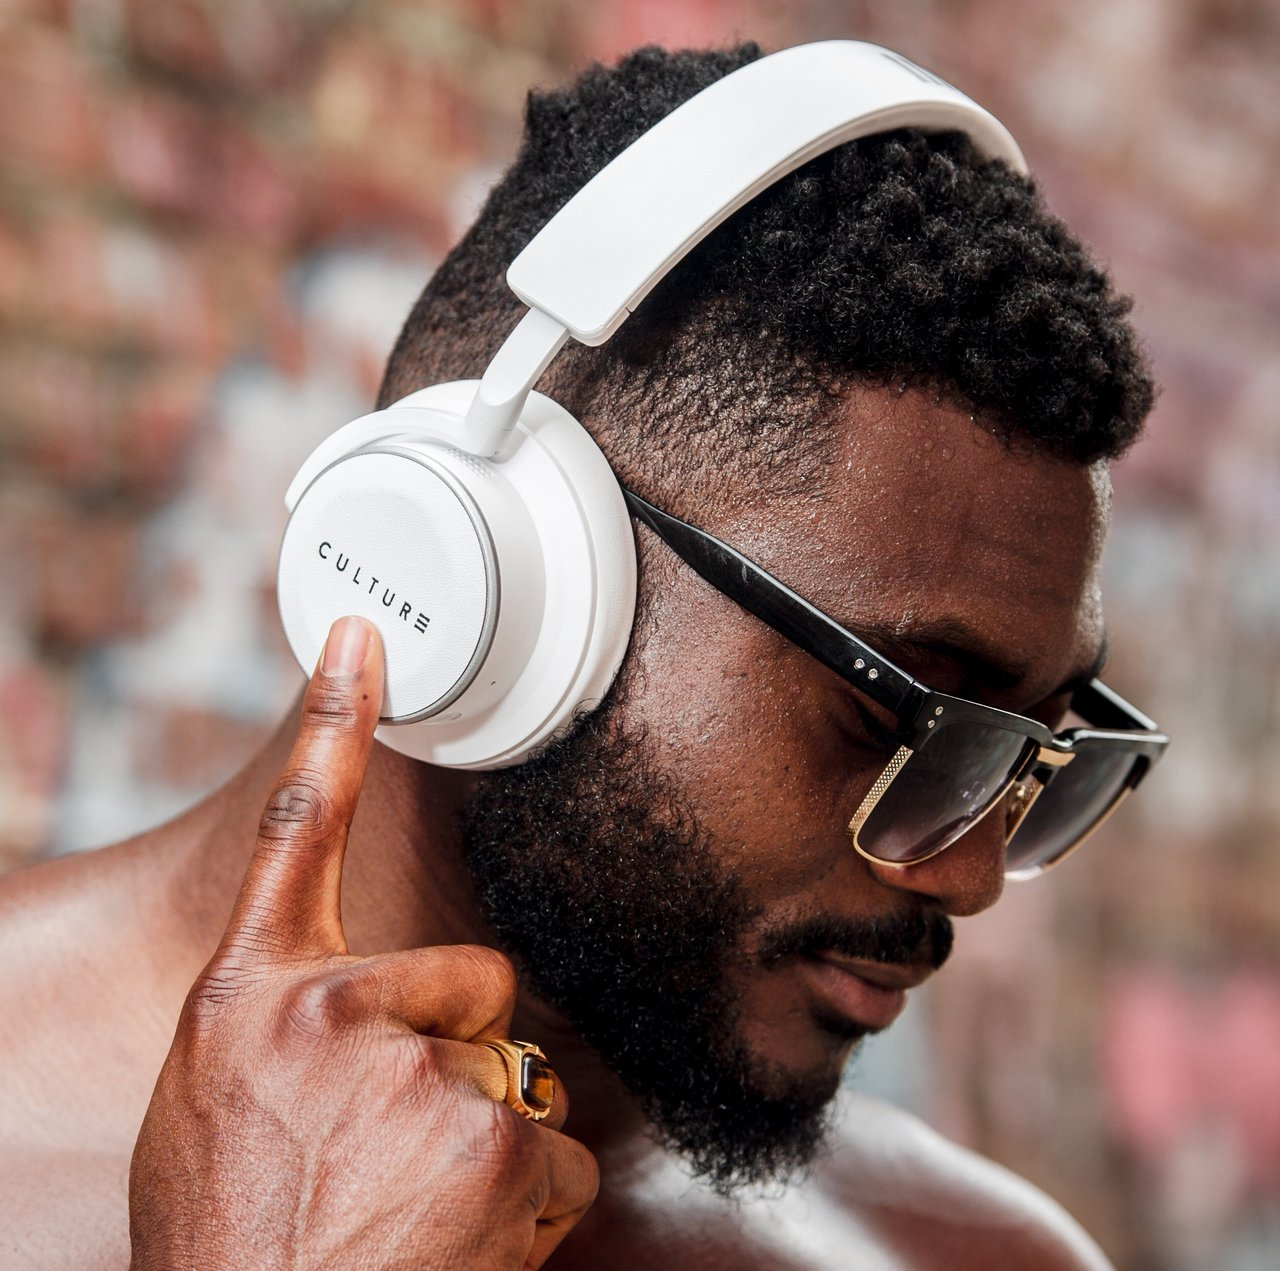 Culture V1 Noise Cancelling Wireless Over Ear Headphones